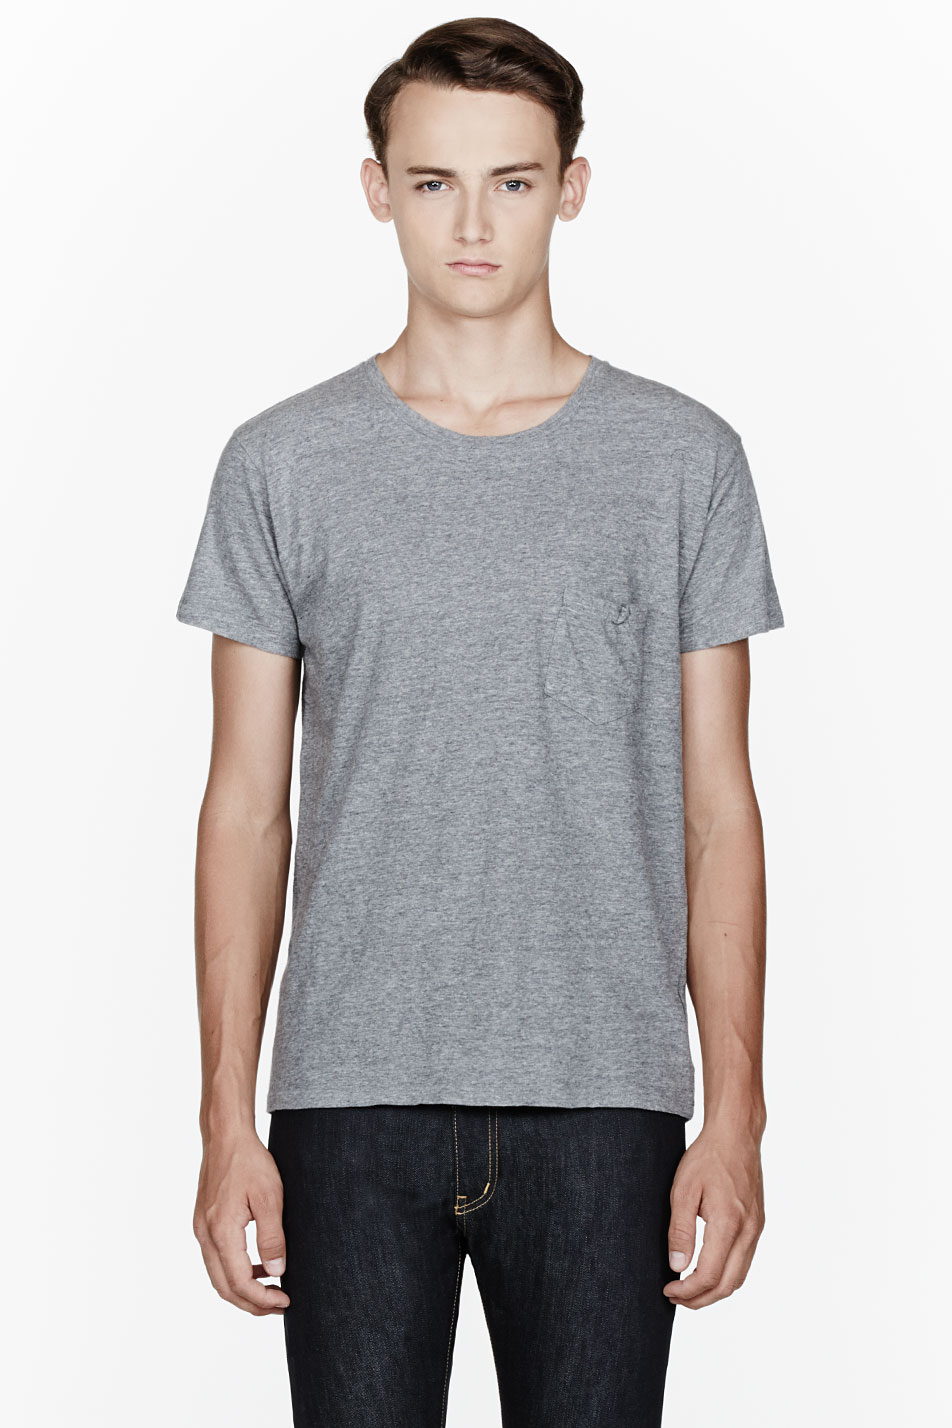 Saint laurent heather grey ruched pocket t shirt in gray for Mens heather grey t shirt